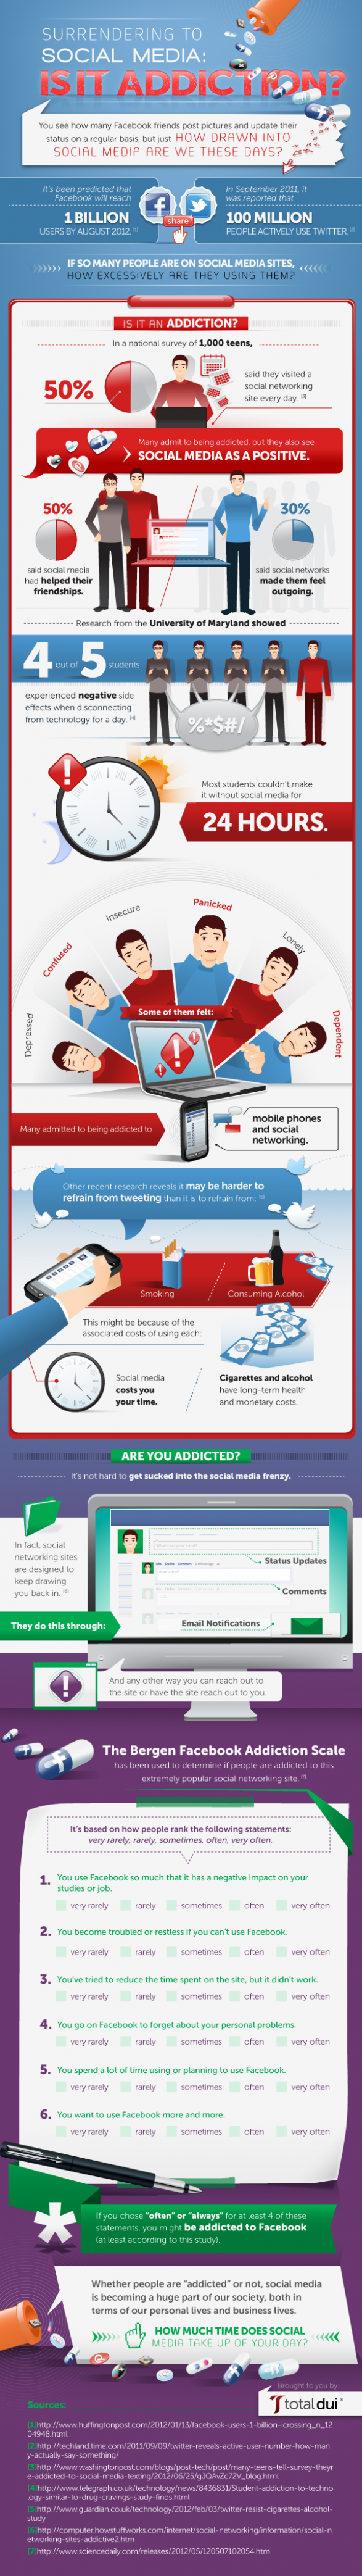 Surrendering to Social Media: Is It Addiction?